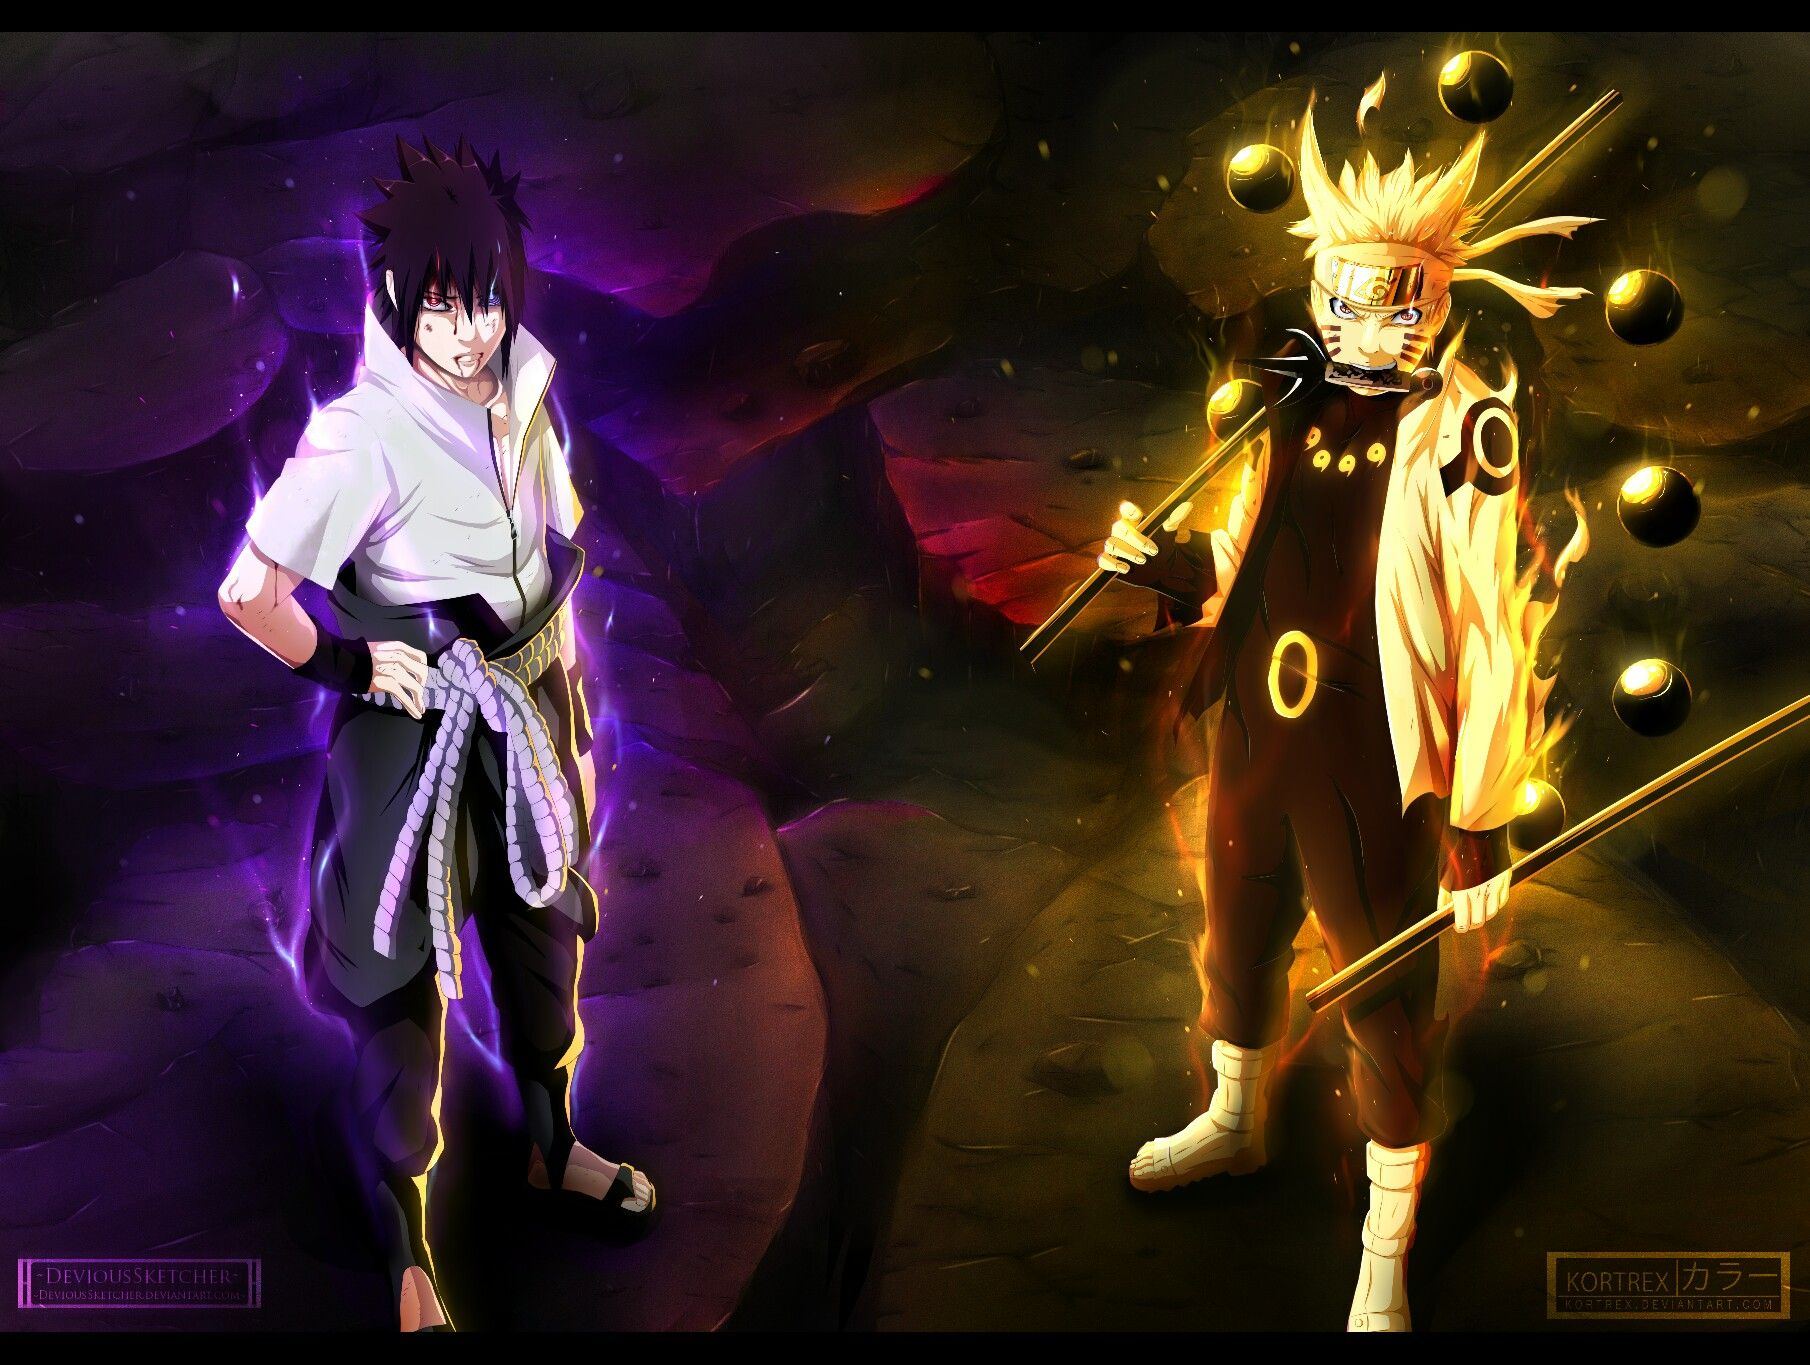 Naruto And Sasuke Wallpaper Naruto Wallpaper Naruto Vs Sasuke